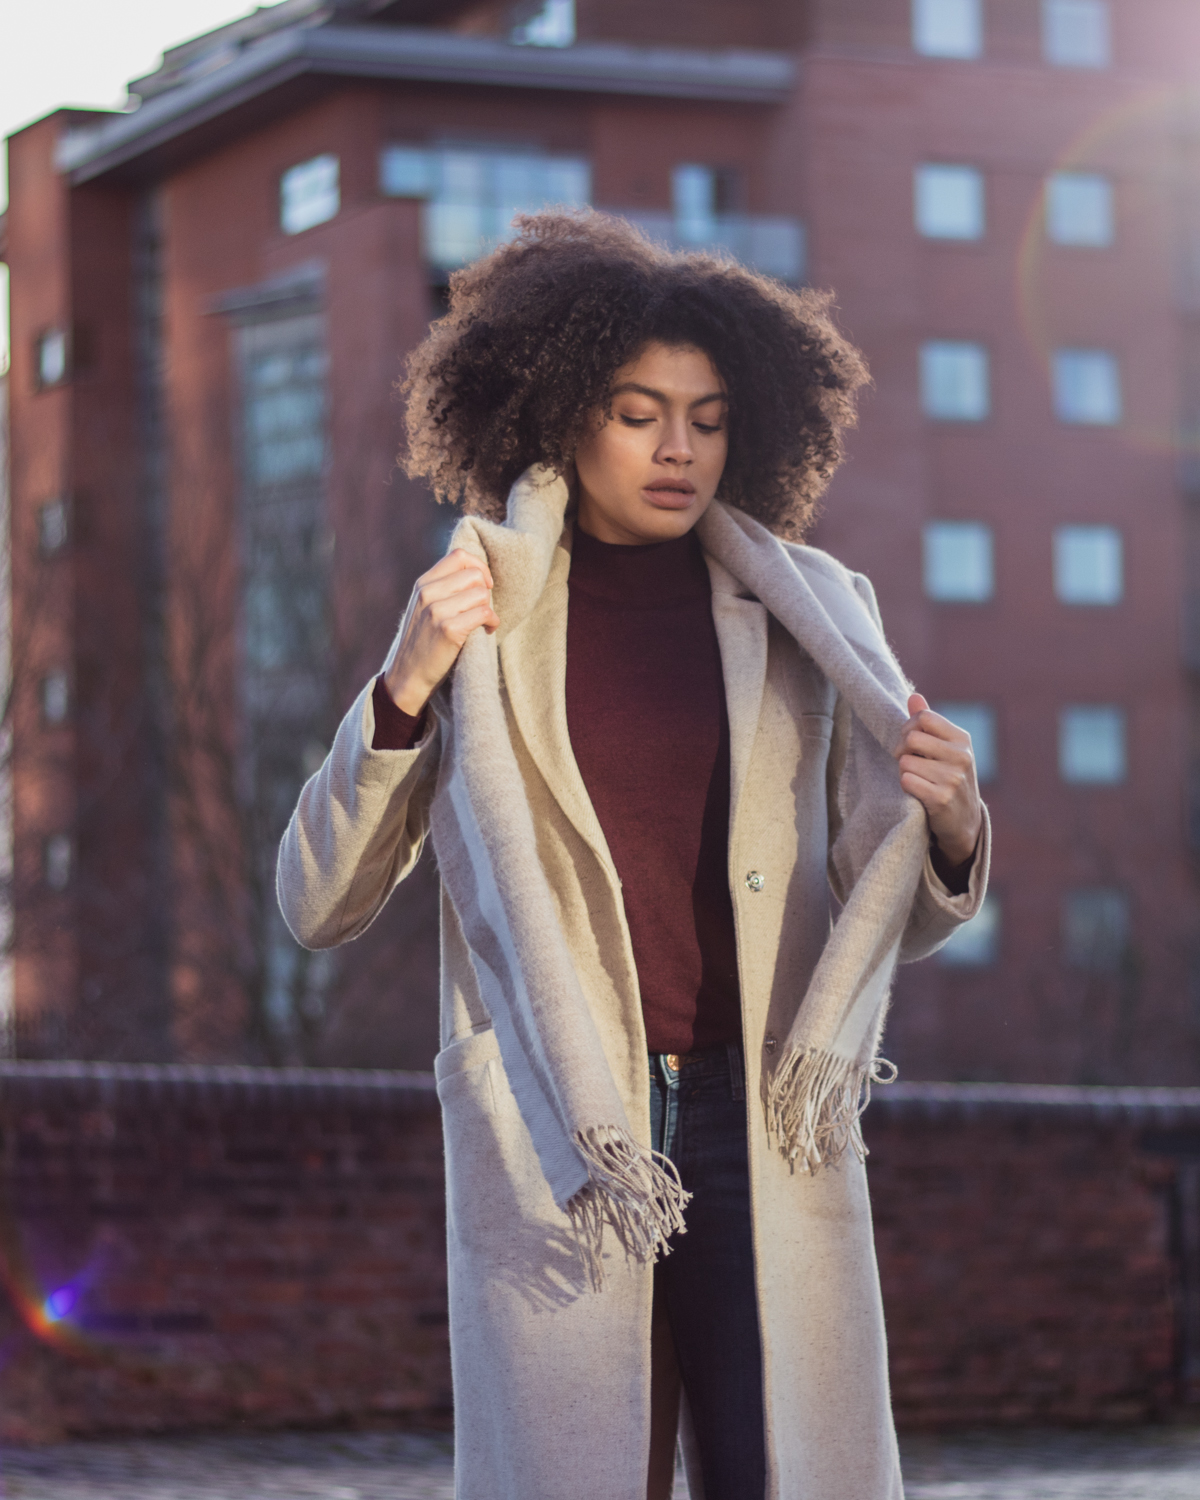 Oatmeal slim coat and scarf minimal style winter outfit